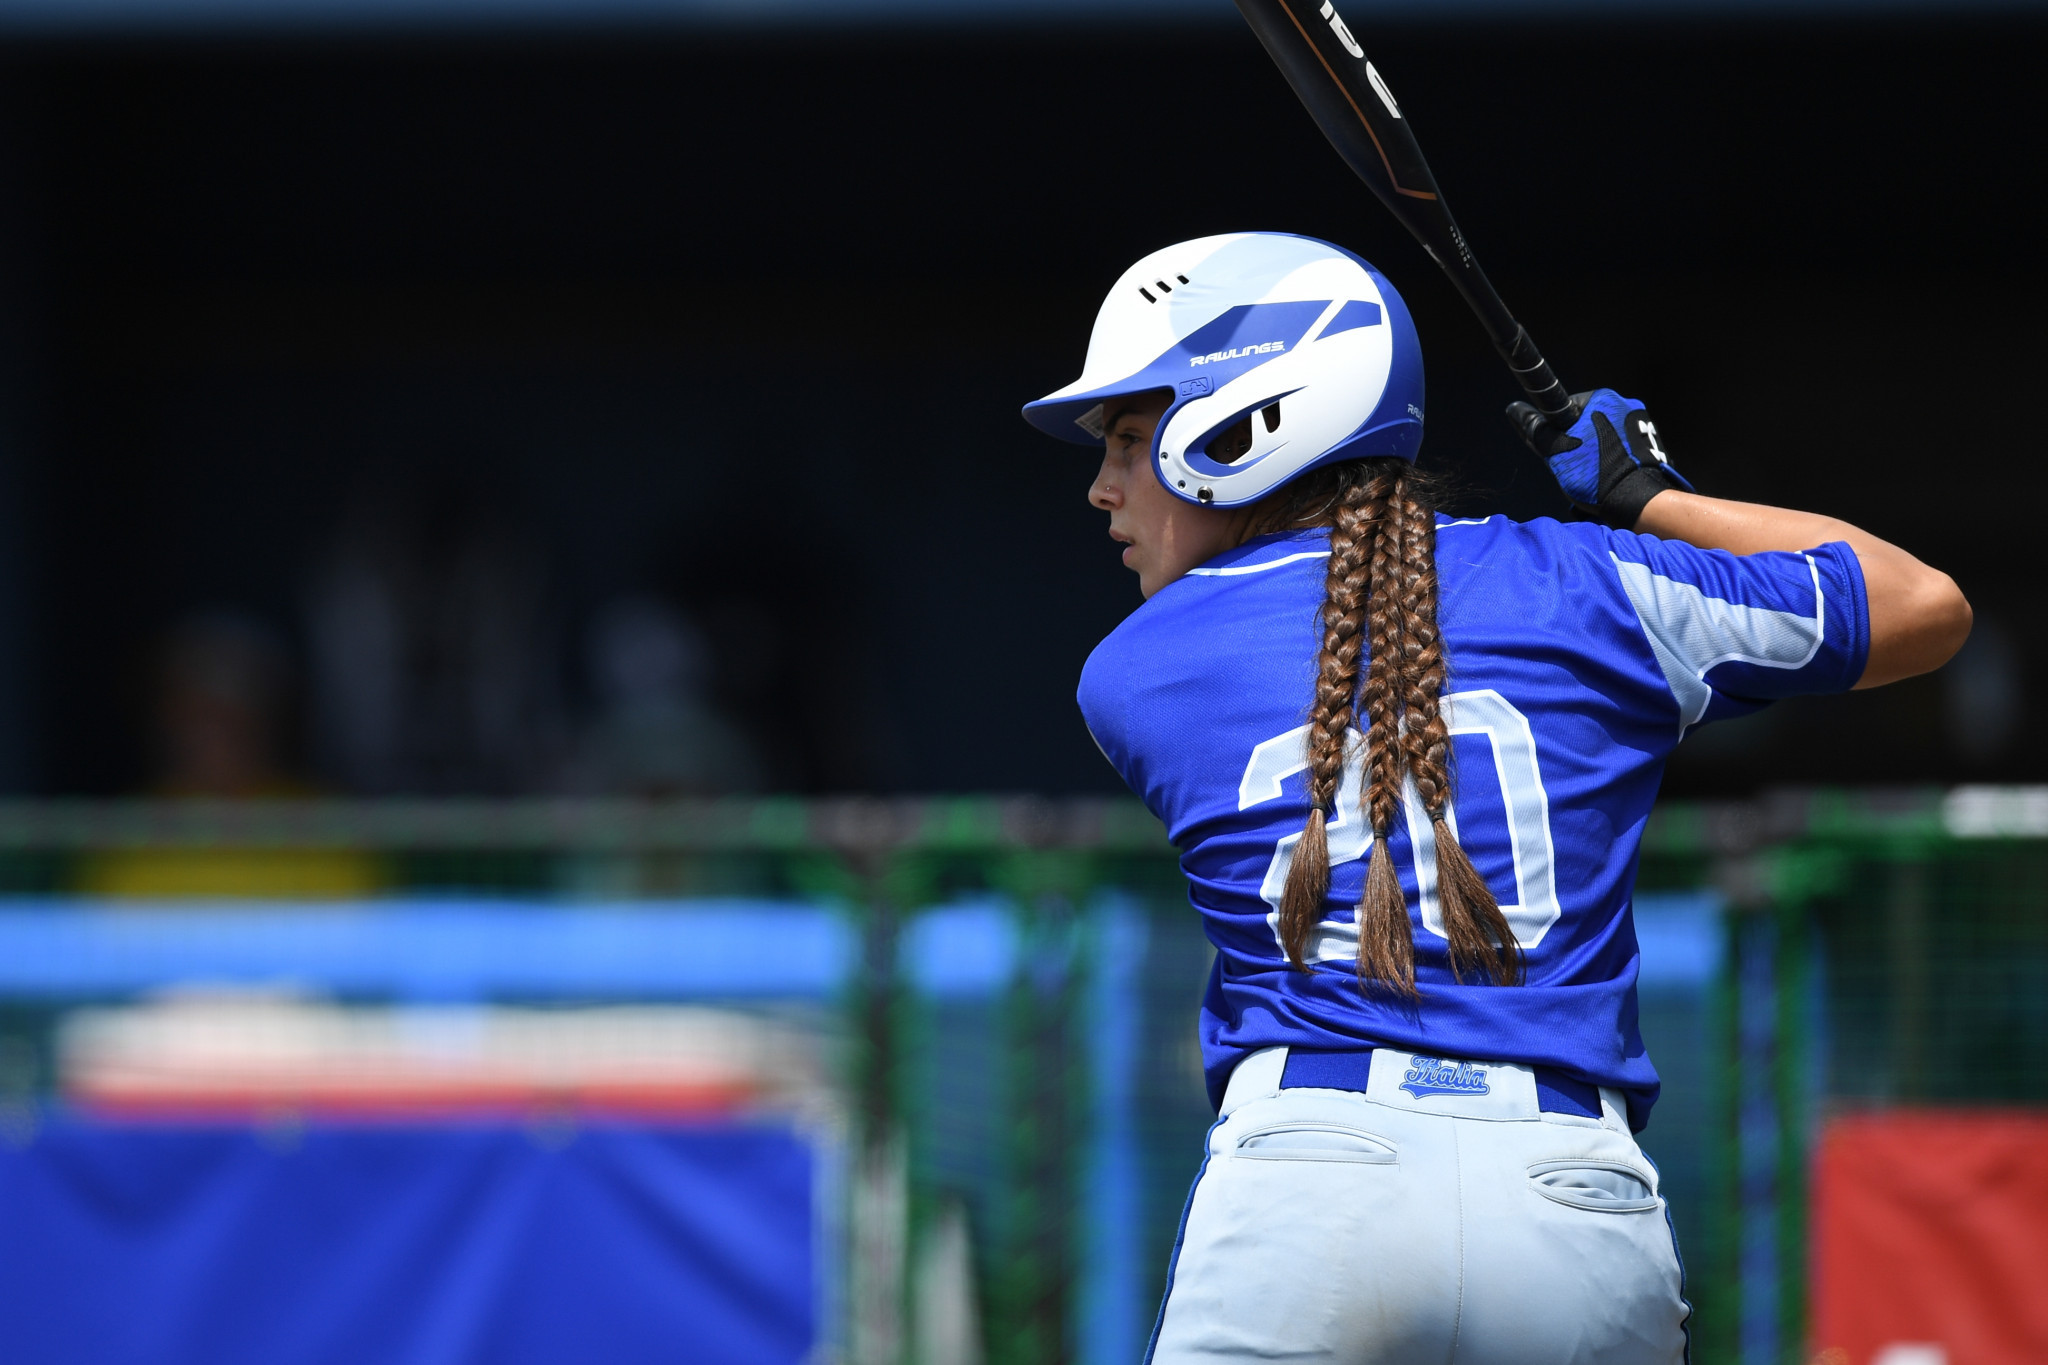 Italy's softball team to step up Tokyo 2020 preparations with training camp